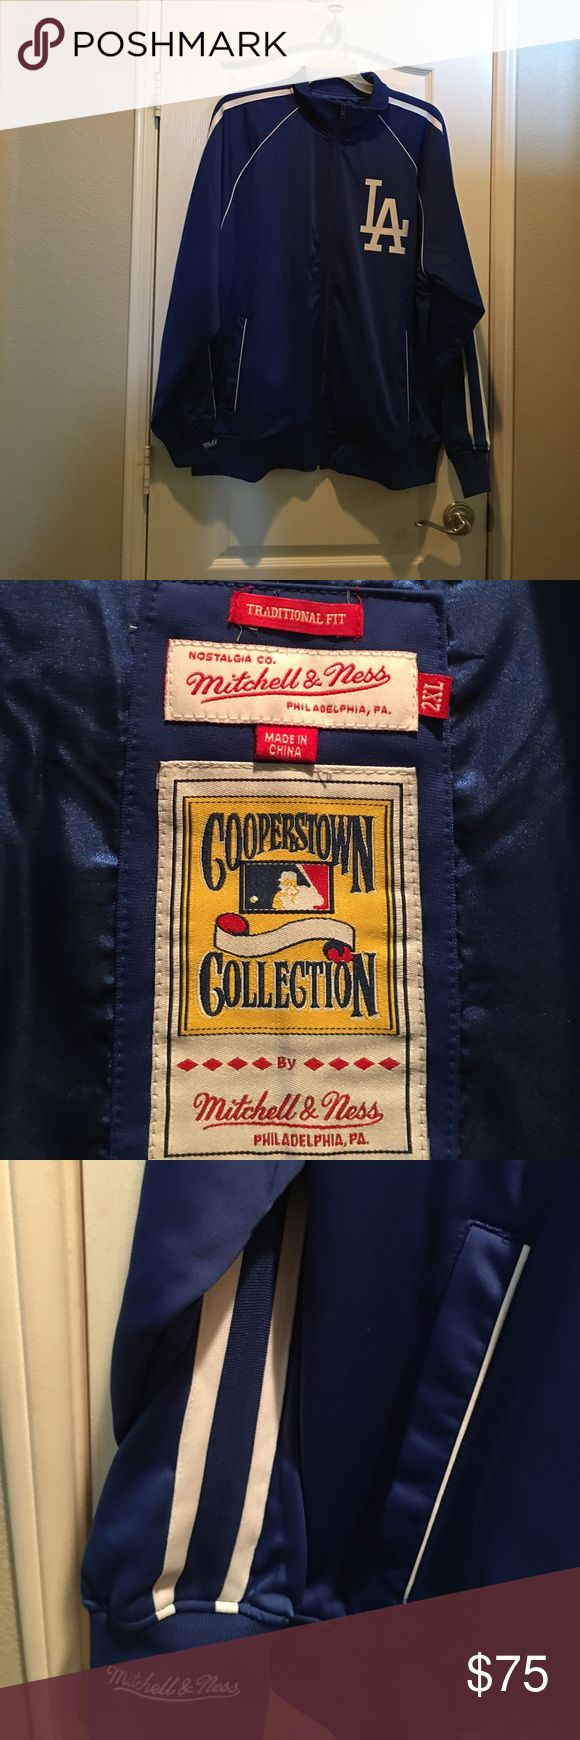 Mitchell & Ness Dodger Jacket L A  Dodger jacket Cooperstown Collection jacket has two pockets. Mitchell & Ness Jackets & Coats